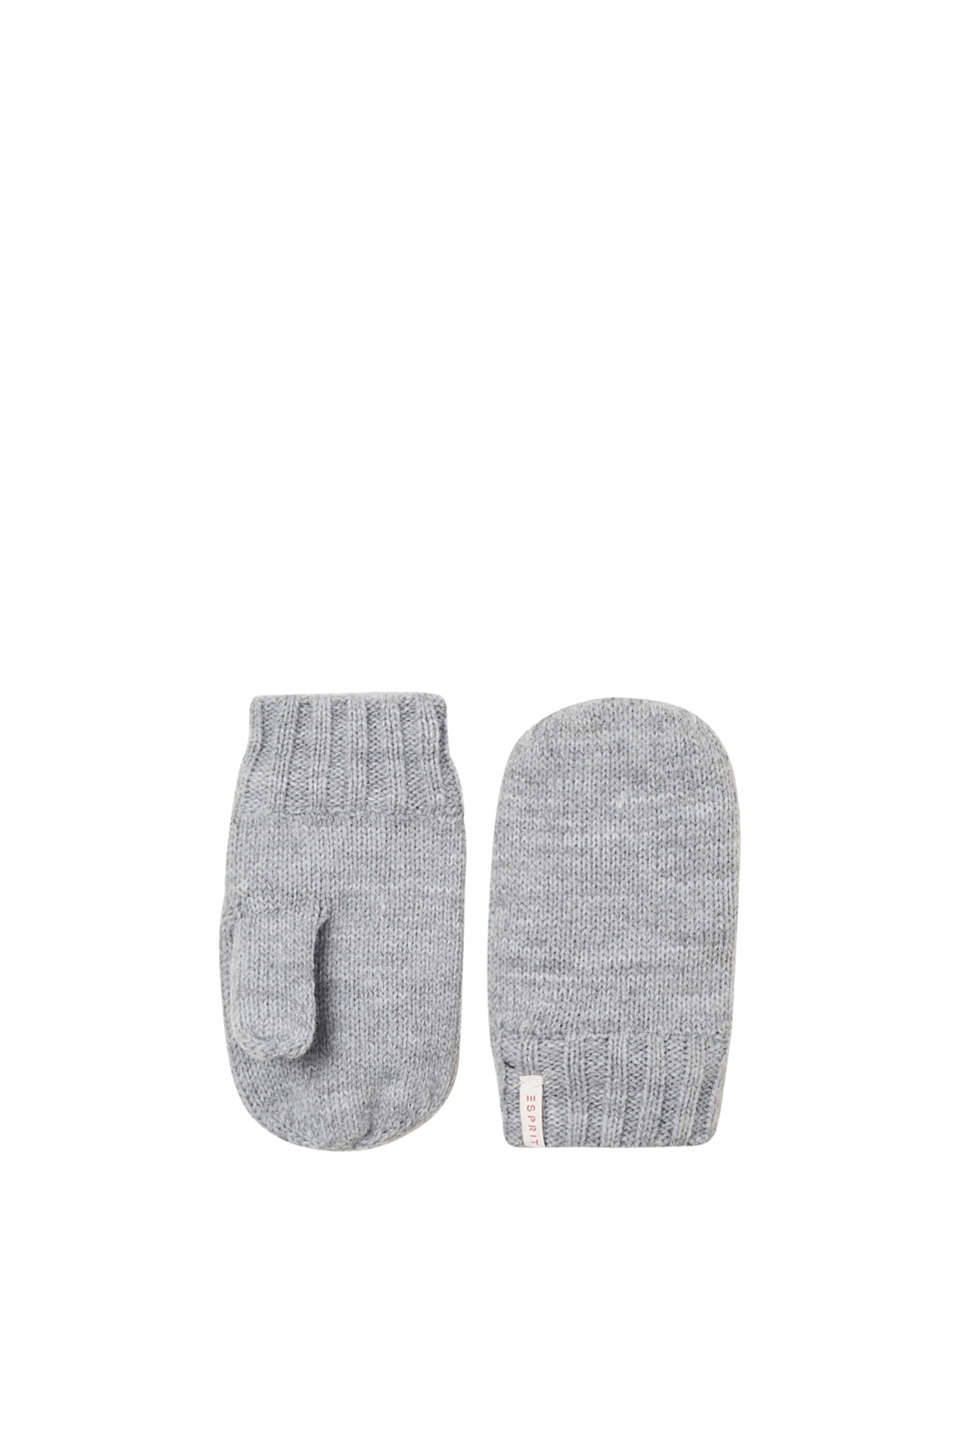 We love knitwear! And these mittens in melange knit fabric are no exception!